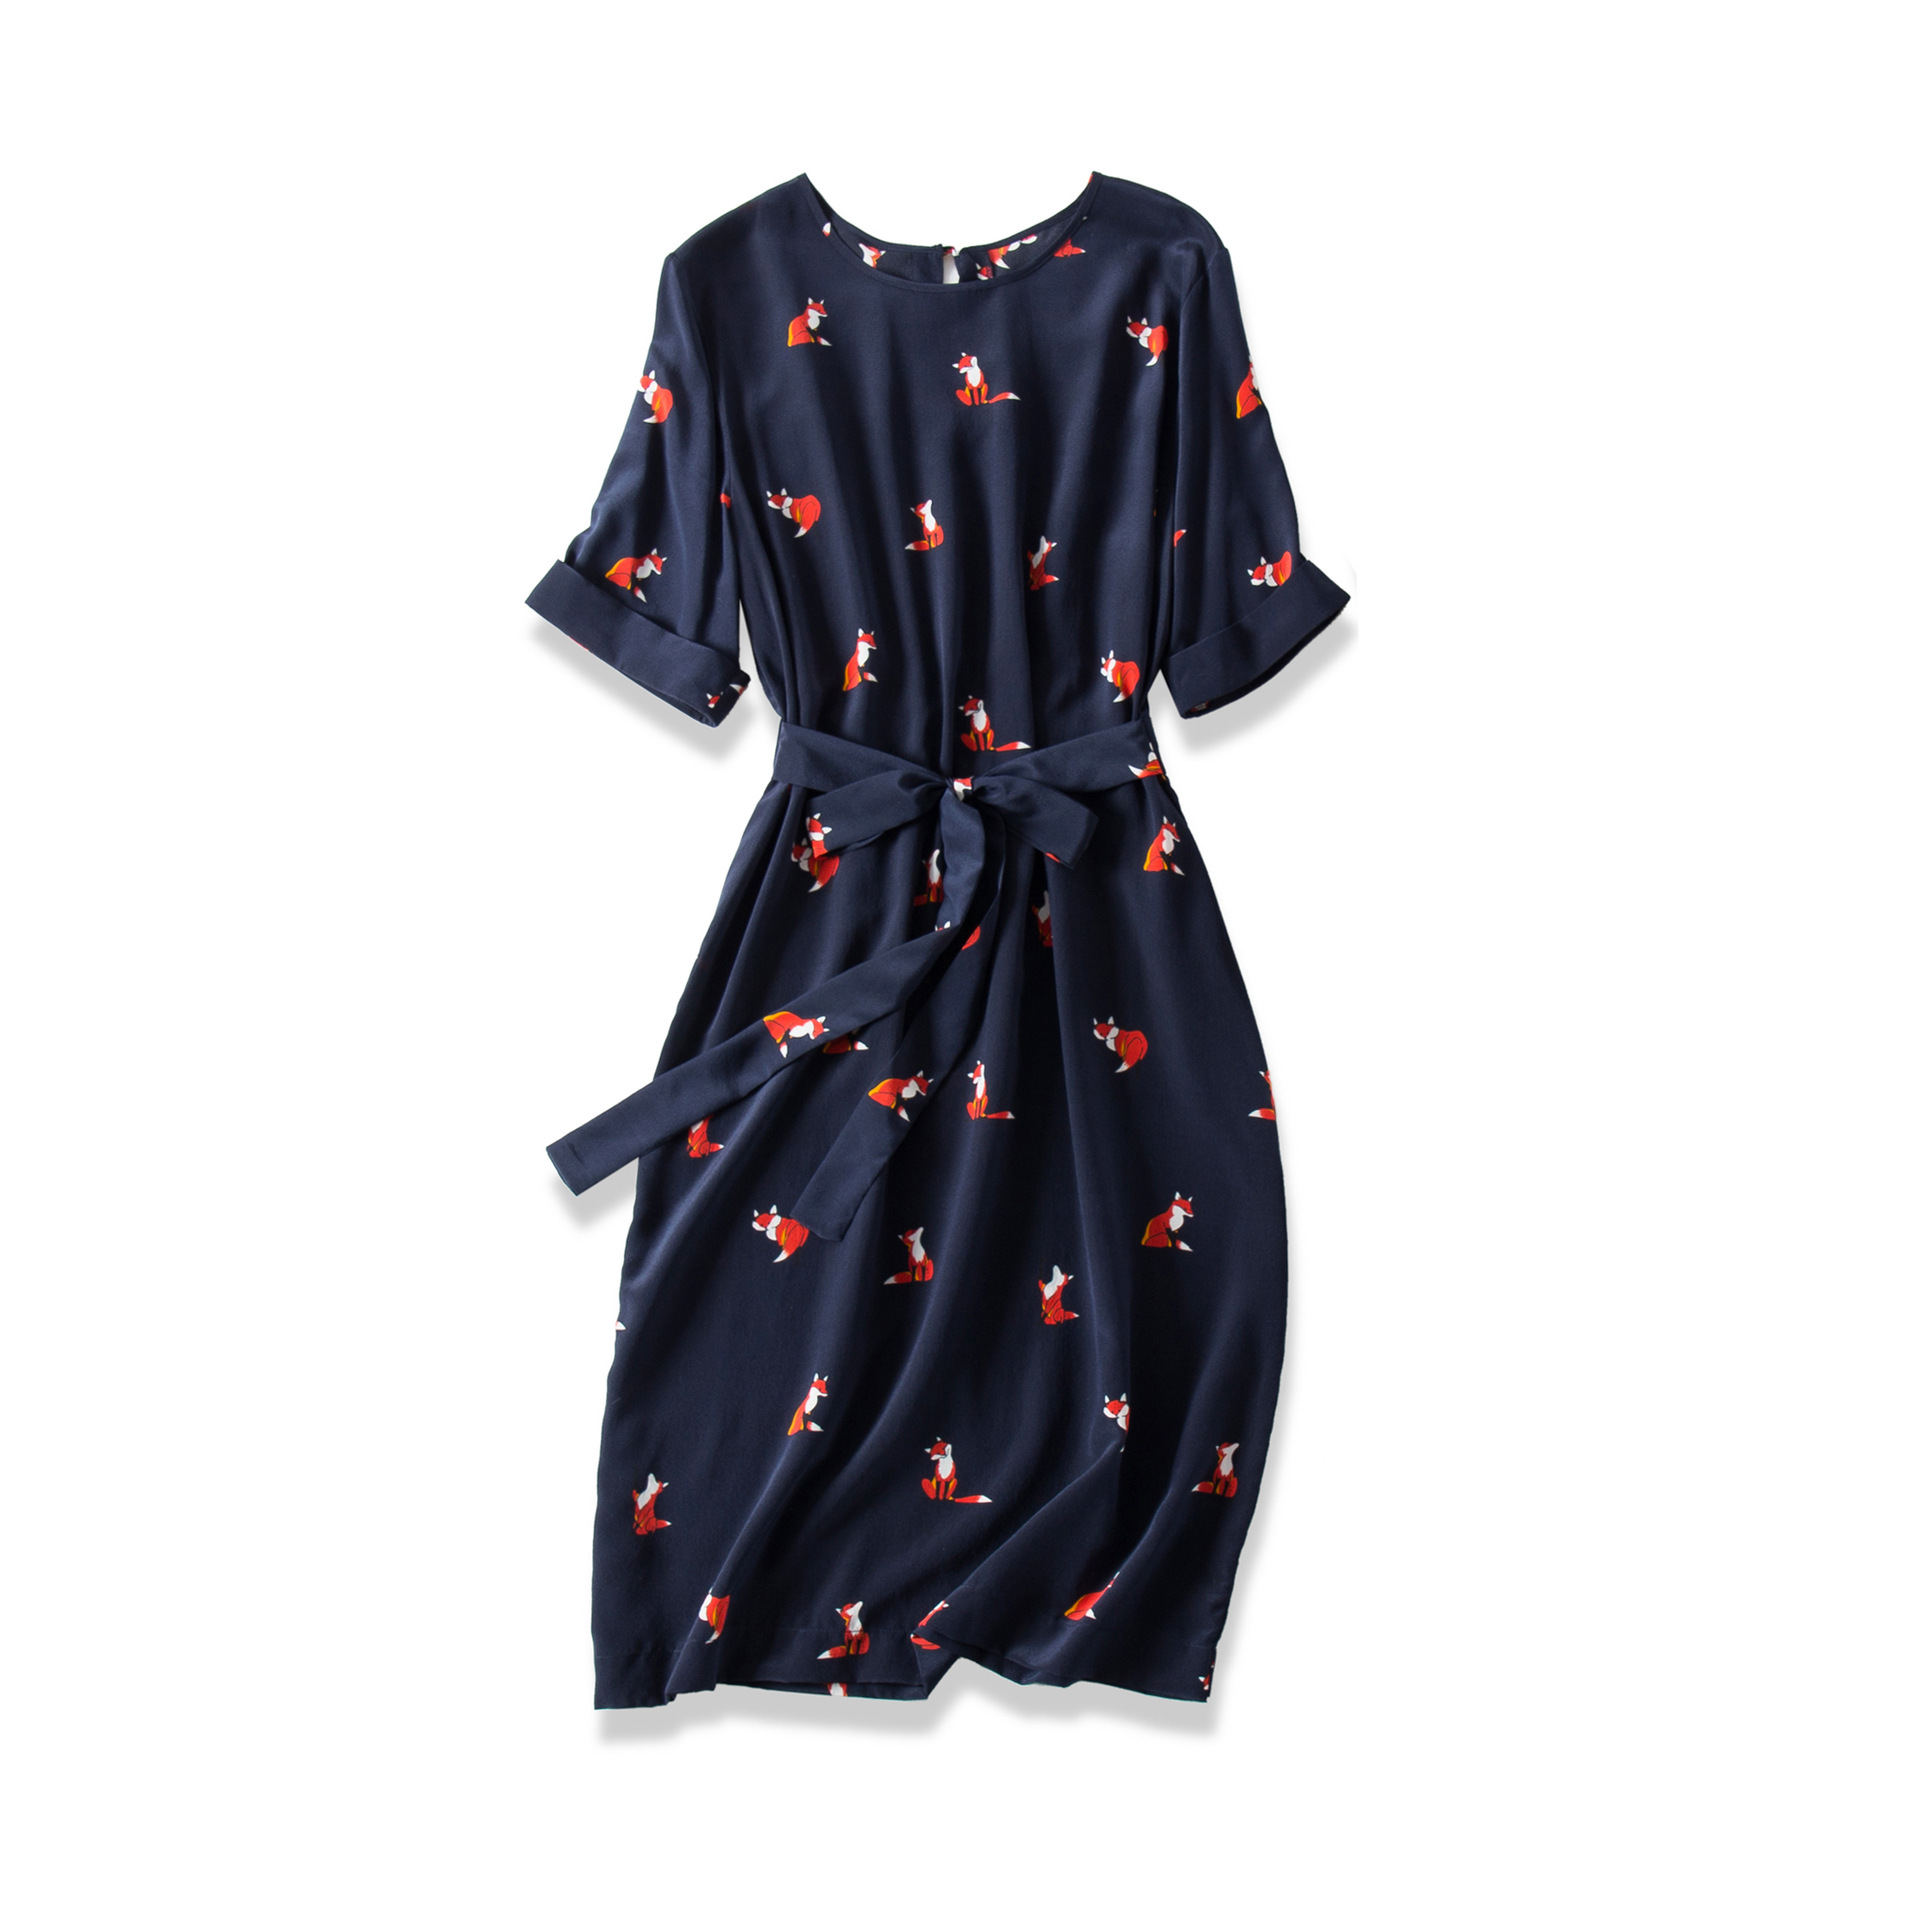 2019 Summer Casual Loose Cute Kawaii Foxes Print Lace-up Silk O-neck Short Fashion Woman Mini Dress Everyday Clothes Size S-l Dresses